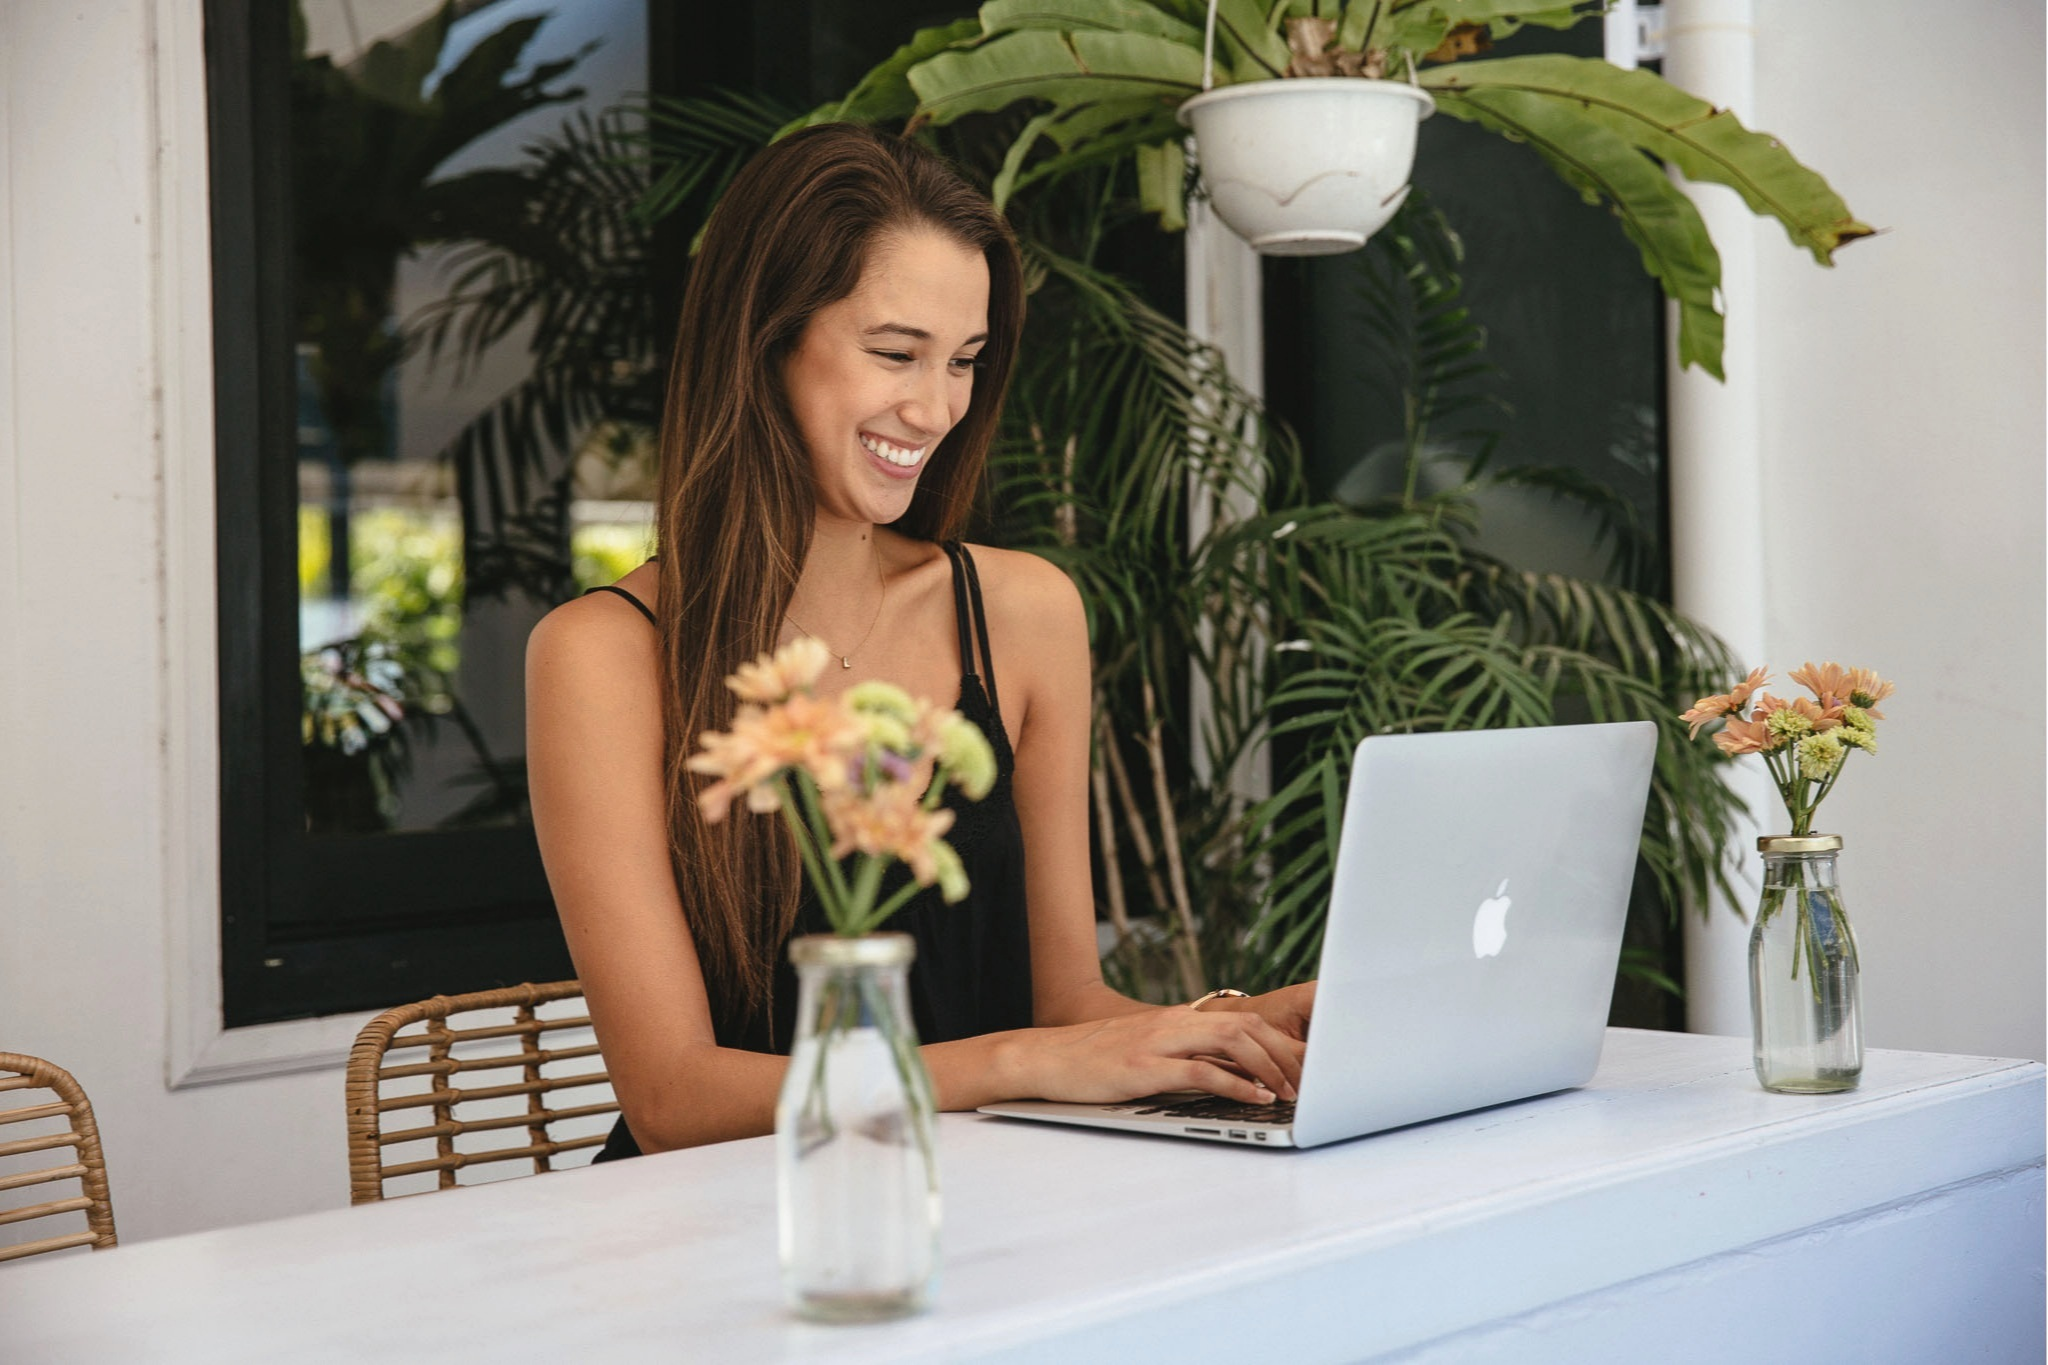 Lauren Tamayo is a Mindset and Productivity Coach for Female Entrepreneurs